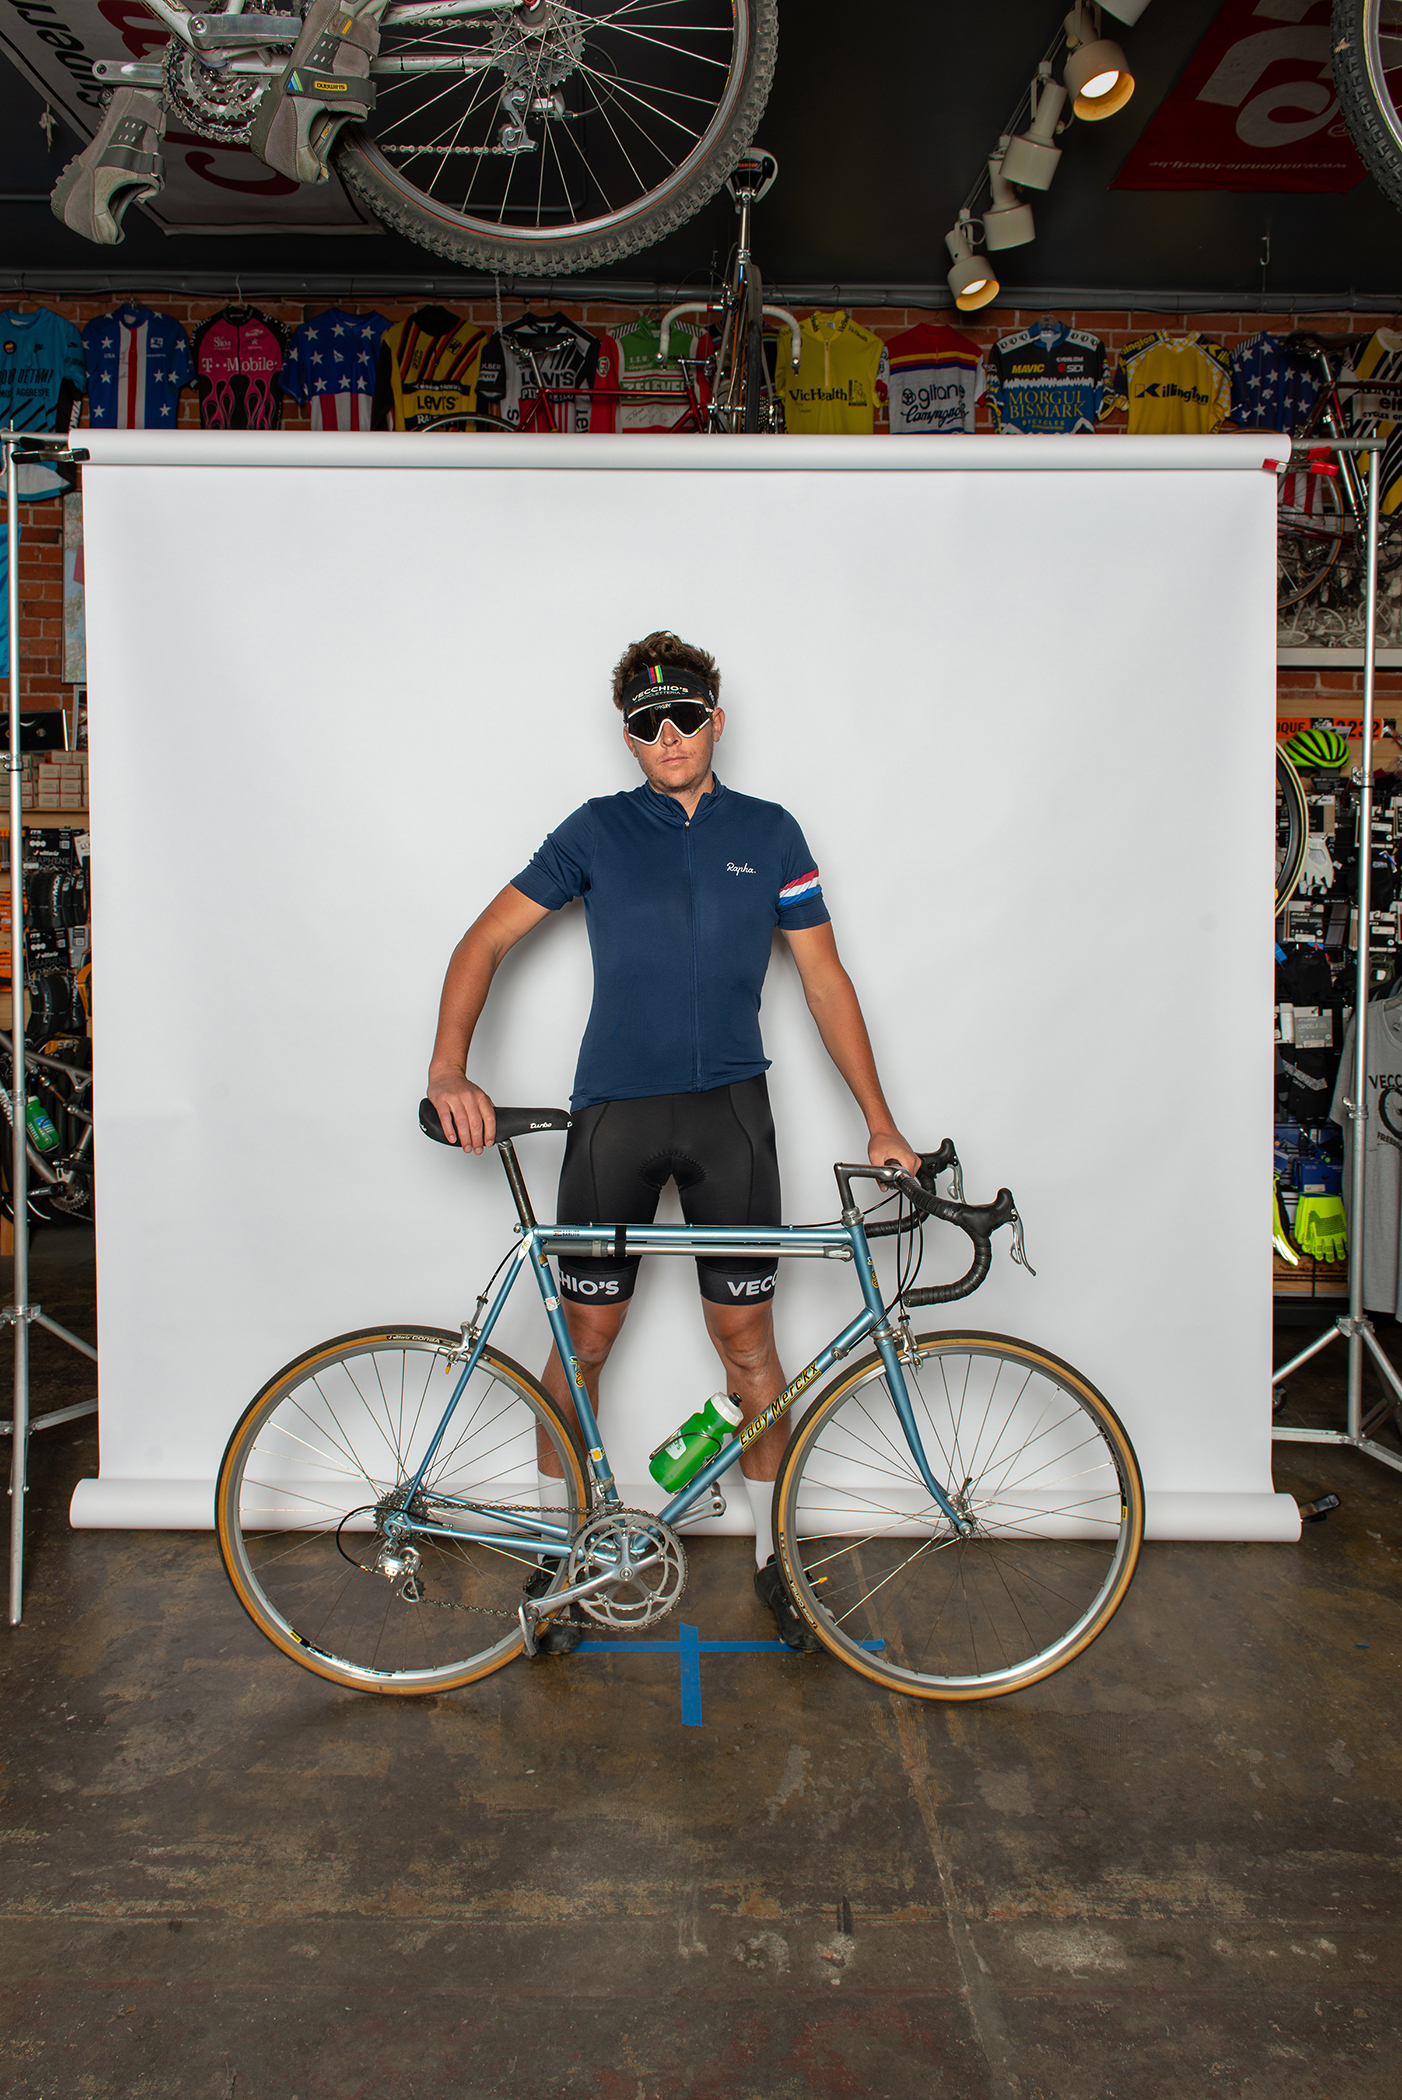 Mat and his Eddy Merckx  At the Vintage Ride Photo Booth.